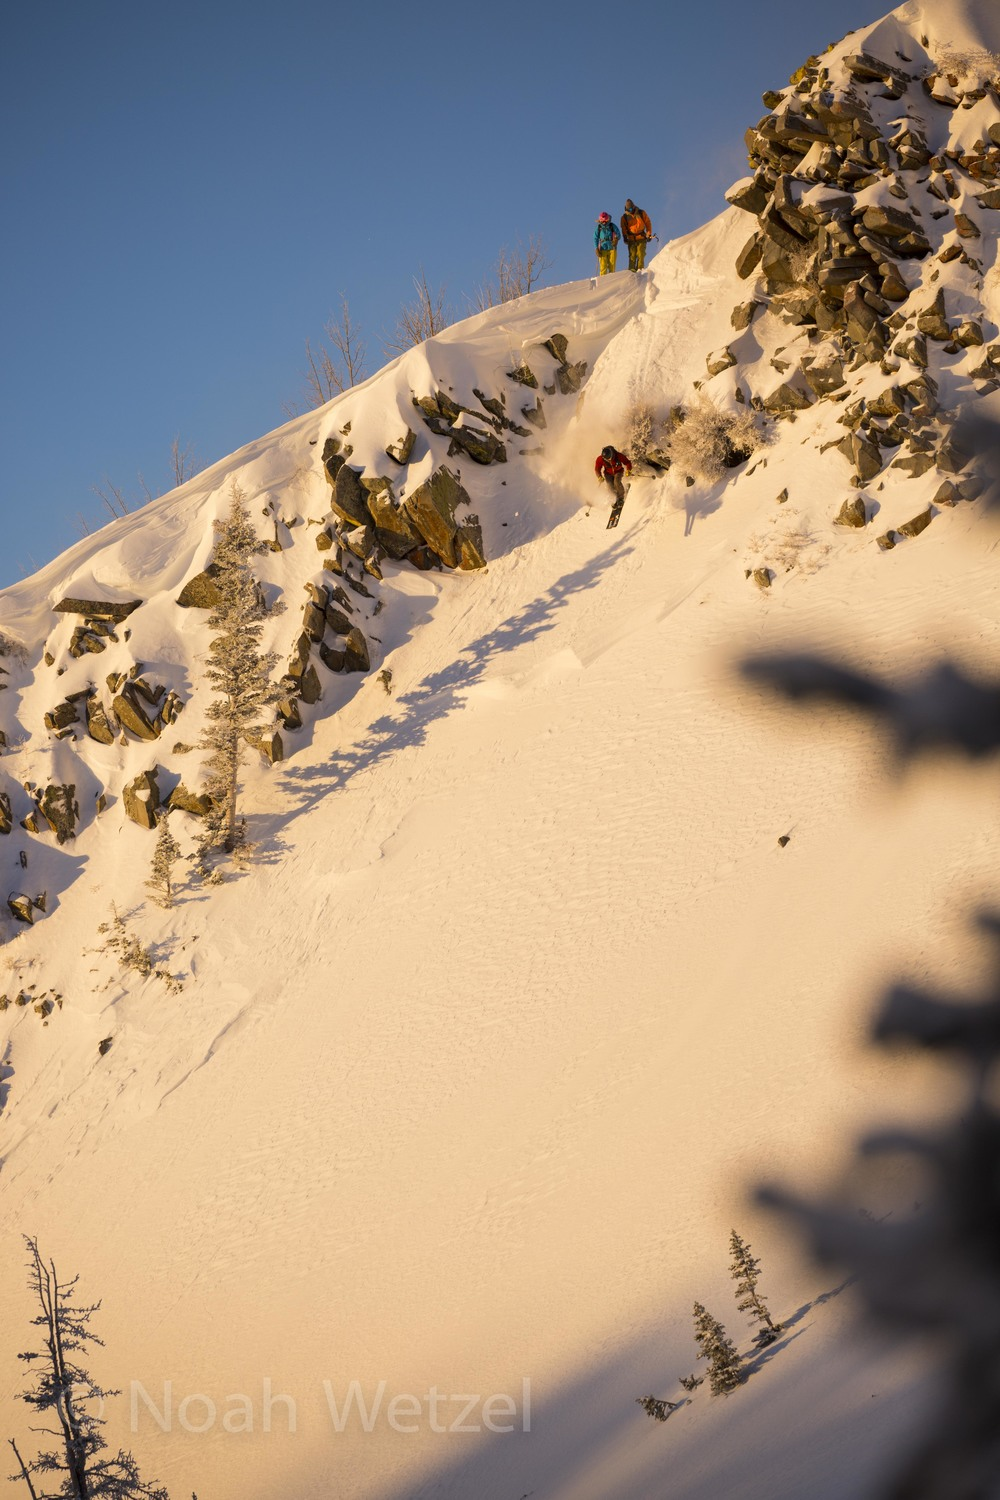 Wille Nelson and Lucy Sackbauer watch as Chris Brule drops into the first line of the morning. Brighton Resort, Utah